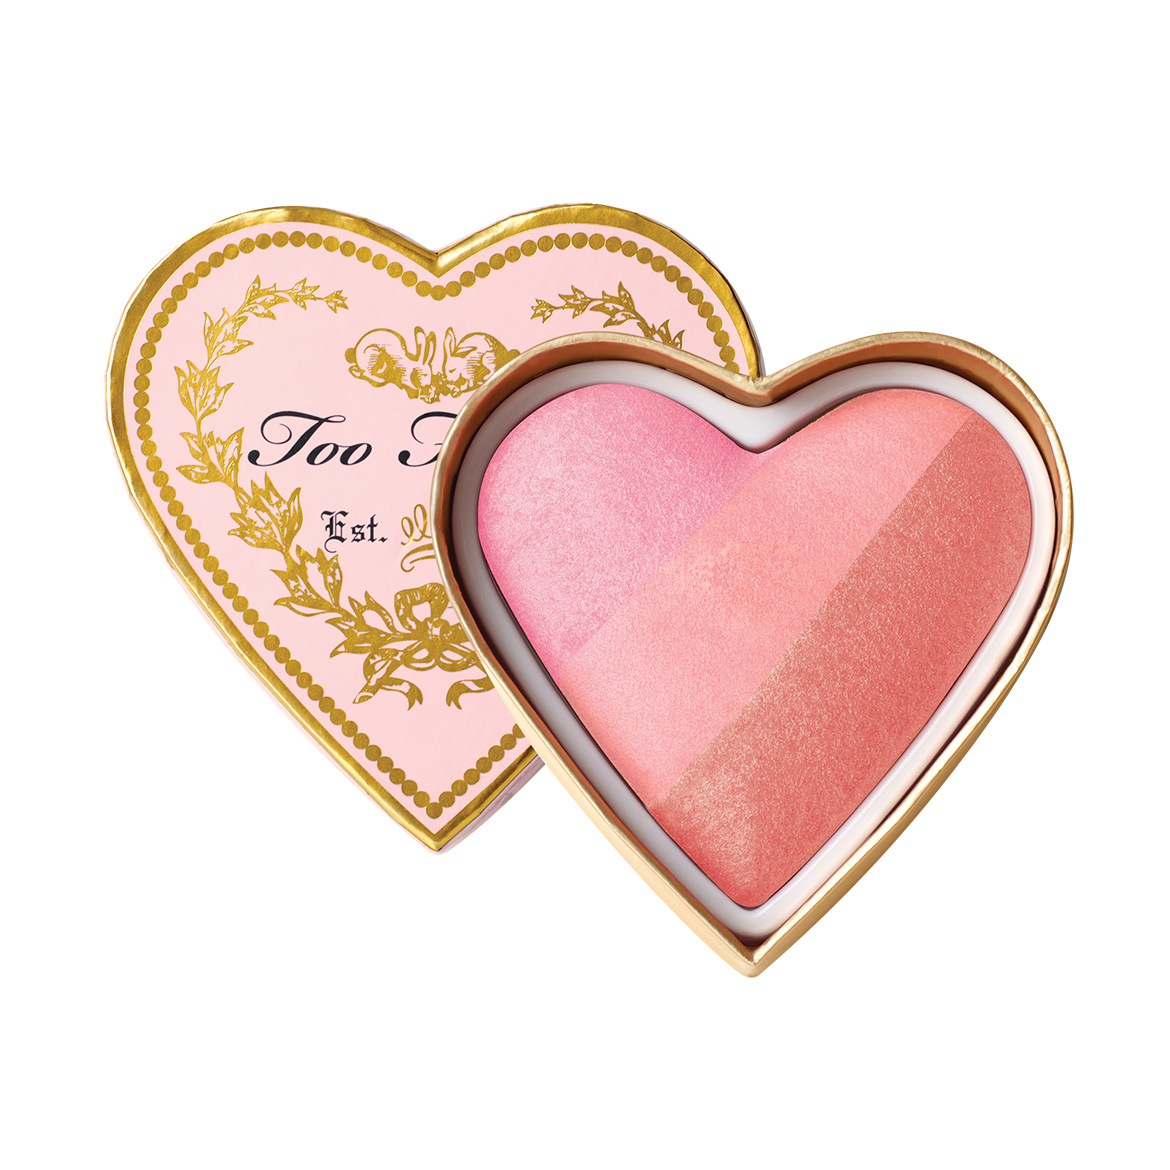 Sweethearts Perfect Flush Blush - Too Faced